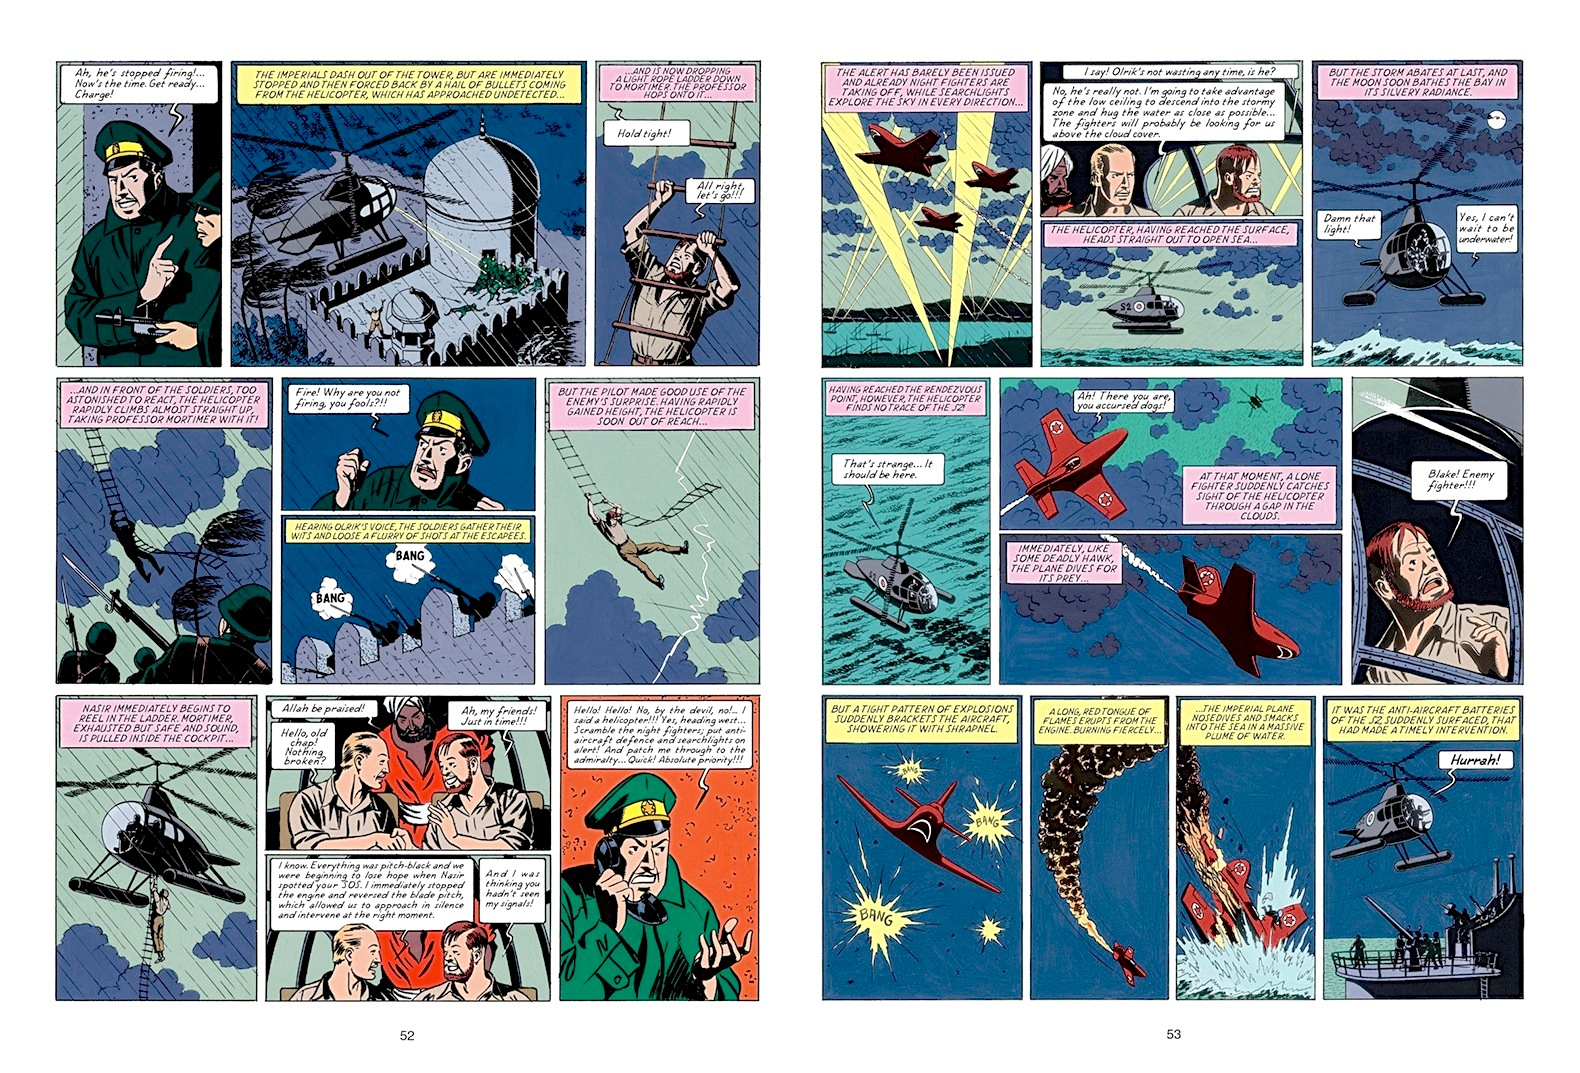 Blake and Mortimer The Secret of the Swordfish Pt 2 review